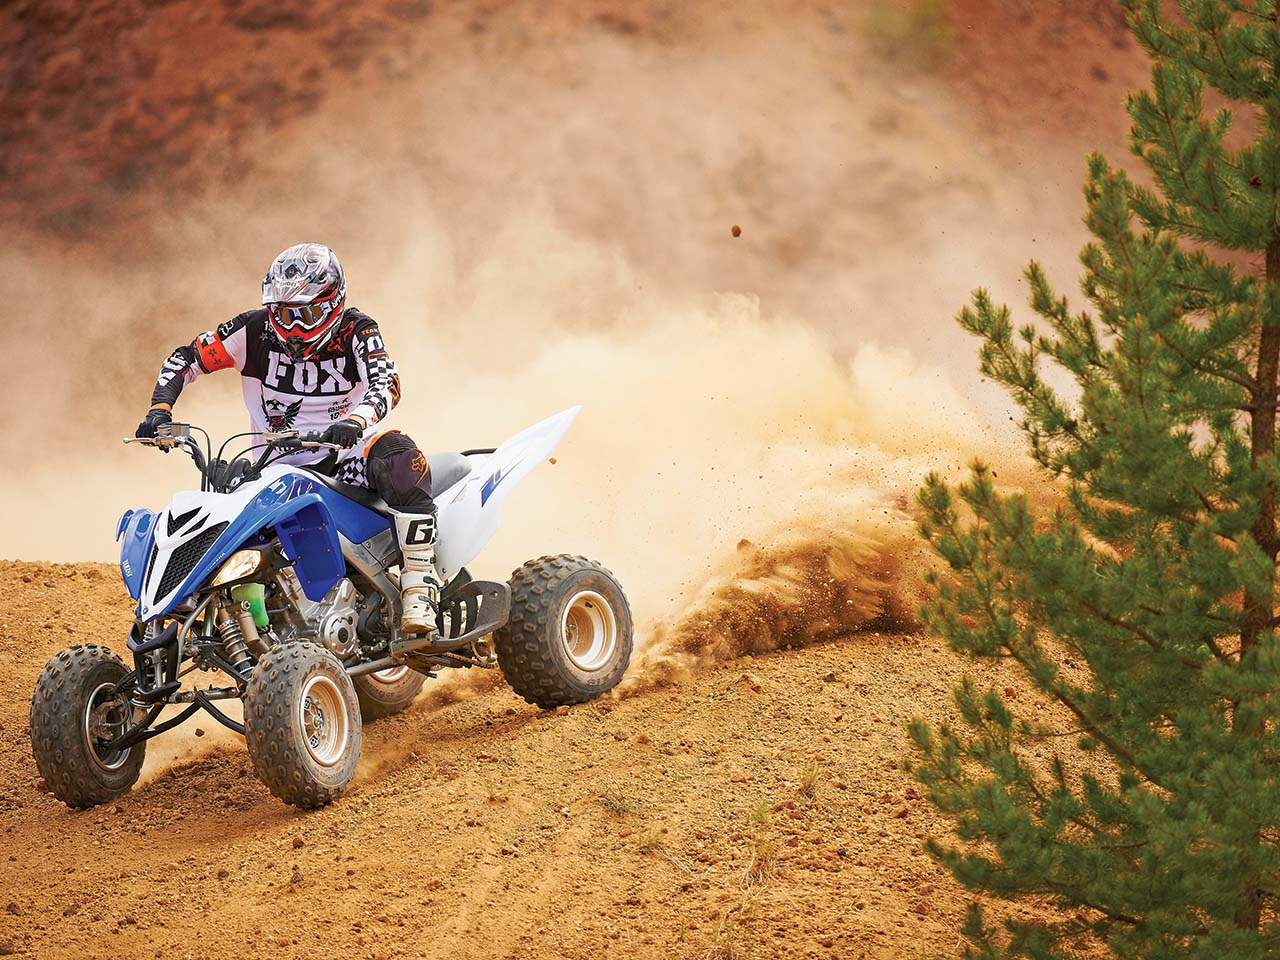 yamaha 700 raptor. a little over year ago yamaha moved all production of the grizzly atv lineup to their newnan, georgia manufacturing facility. 700 raptor